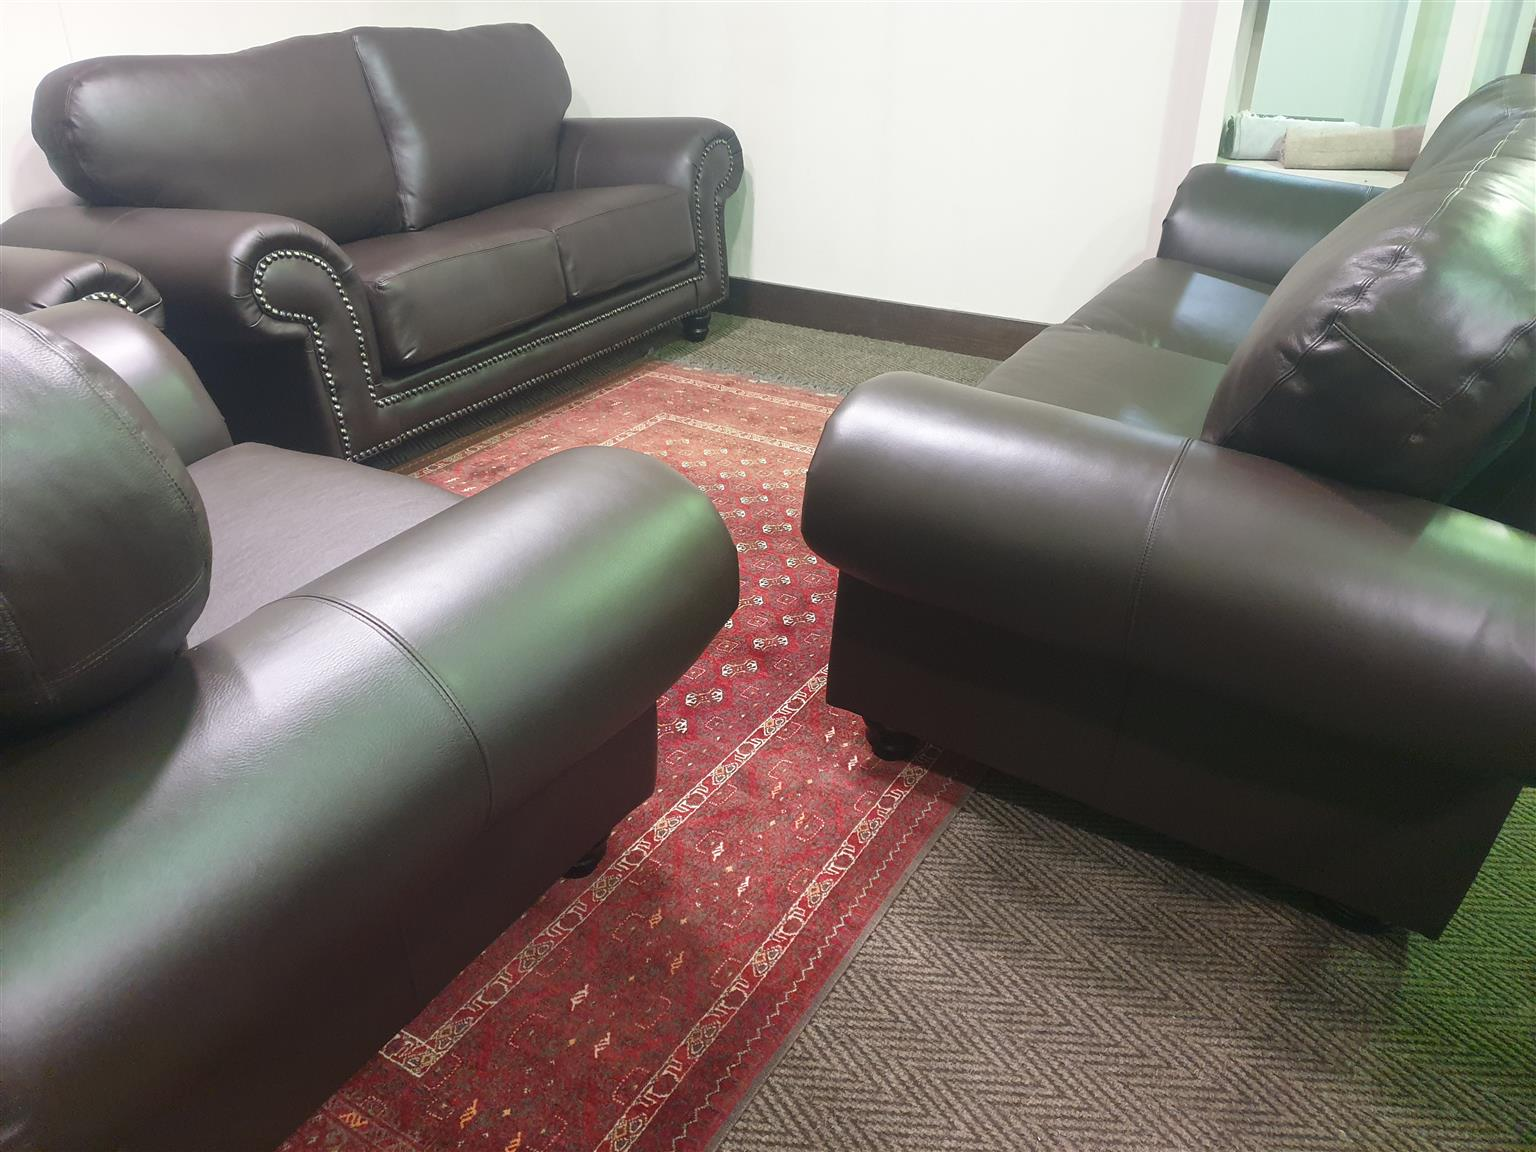 100% genuine full leather 321 lounge suite WAS R 37495 NOW R 34995